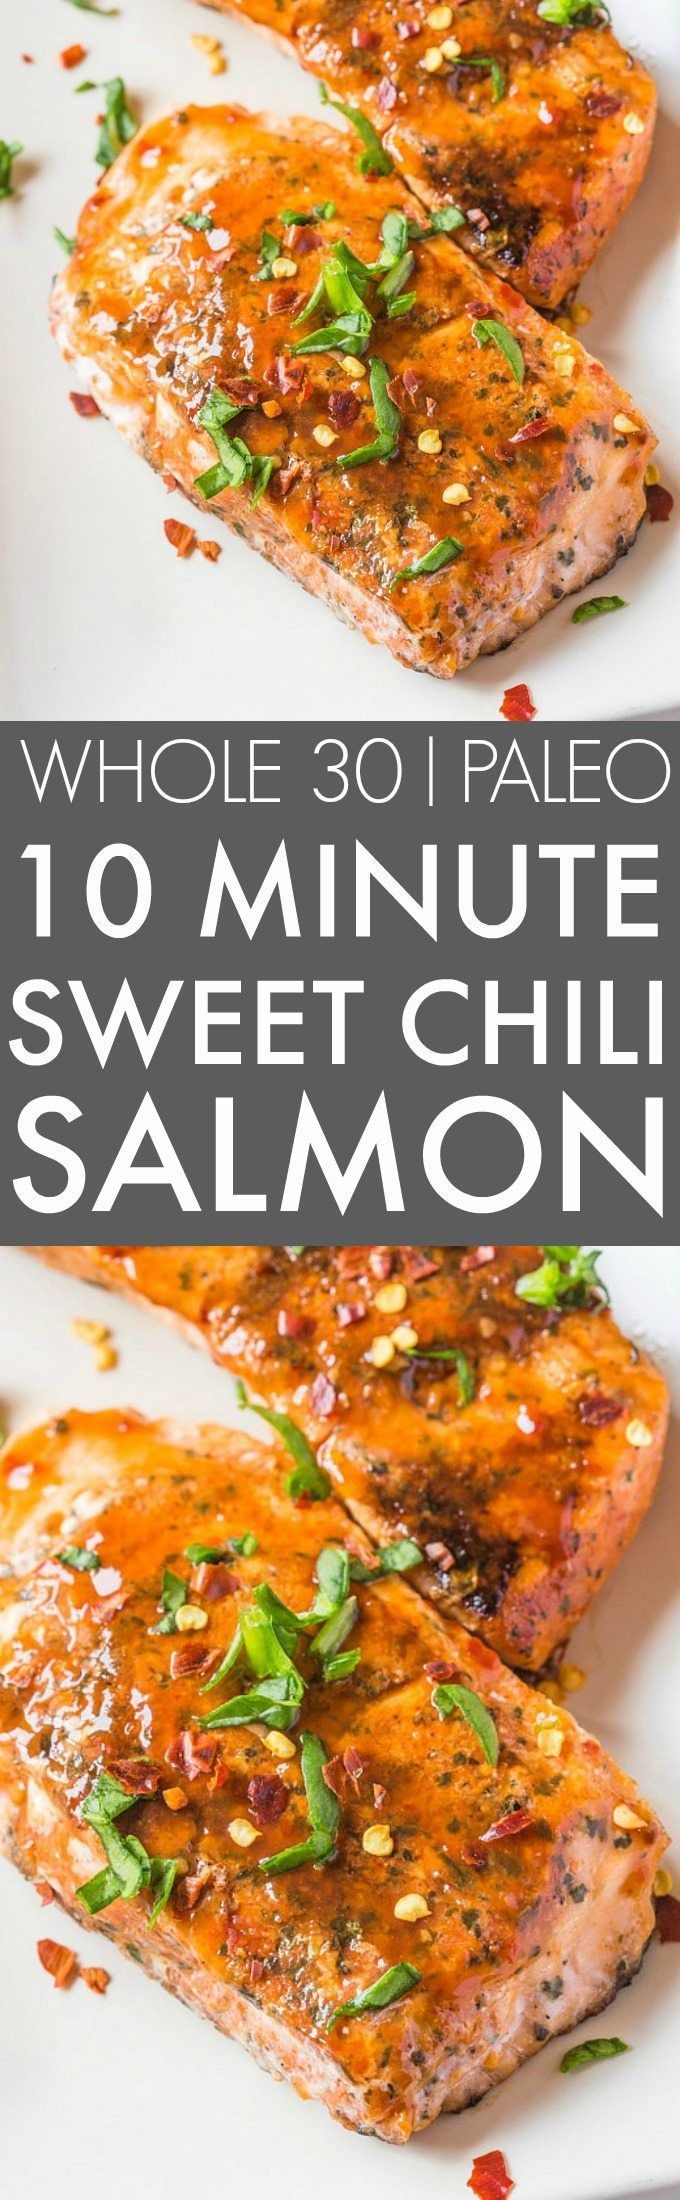 Easy 10 Minute Sweet Chili Salmon (Whole 30, Paleo)- Whole30 friendly sweet chilli/chili salmon seared in TEN minutes- SO flavorful and perfect low carb, high protein meal! {paleo, whole30, gluten free}- thebigmansworld.com/